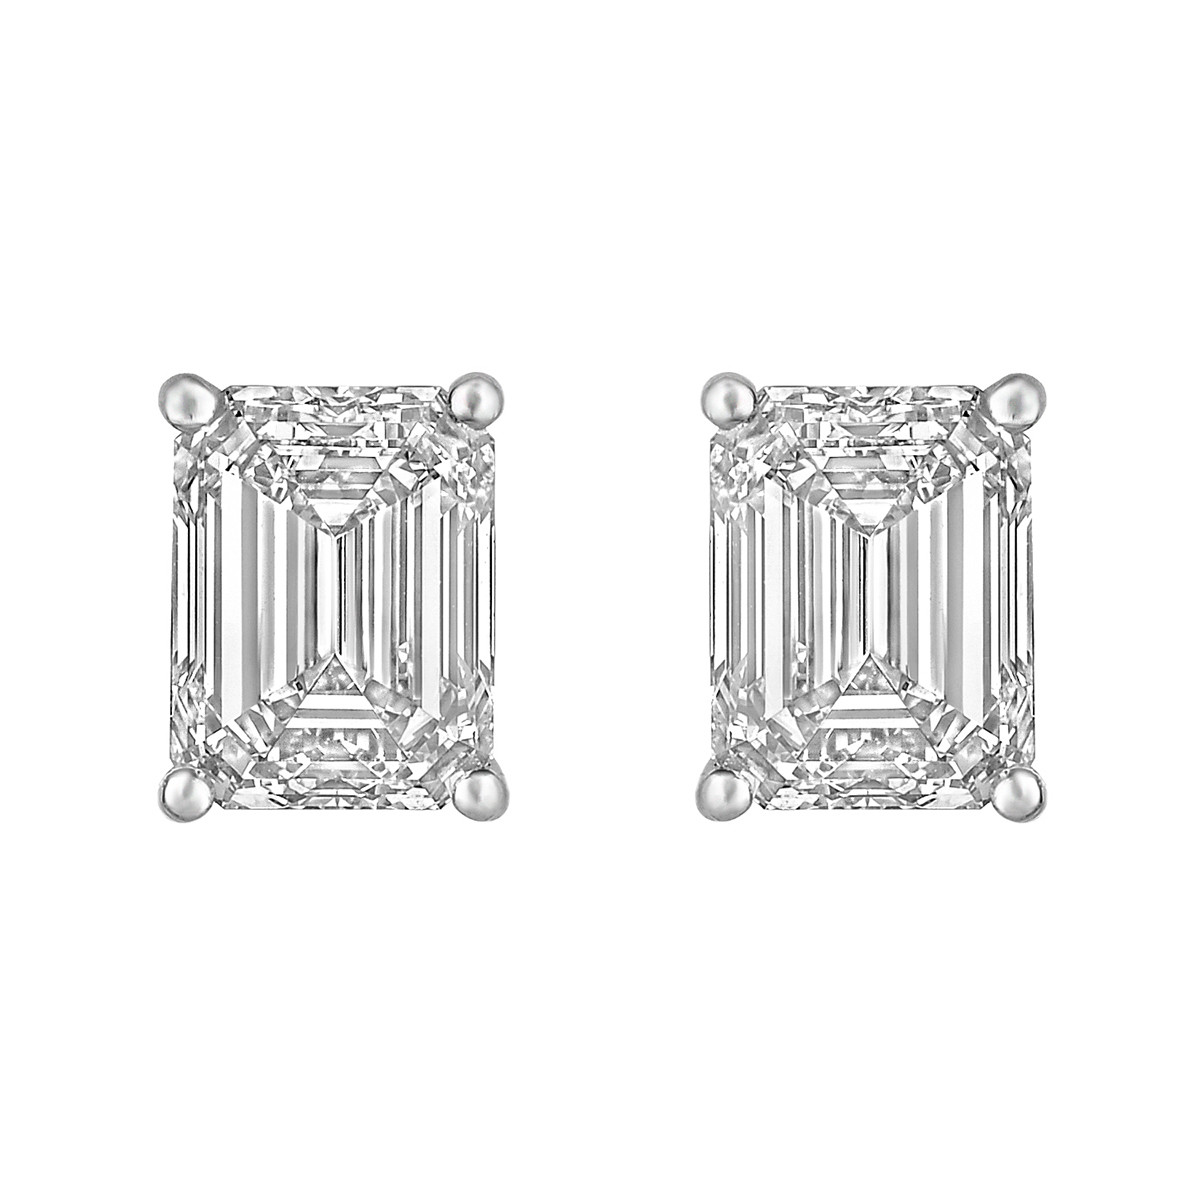 Emerald-Cut Diamond Stud Earrings (6 ct tw)